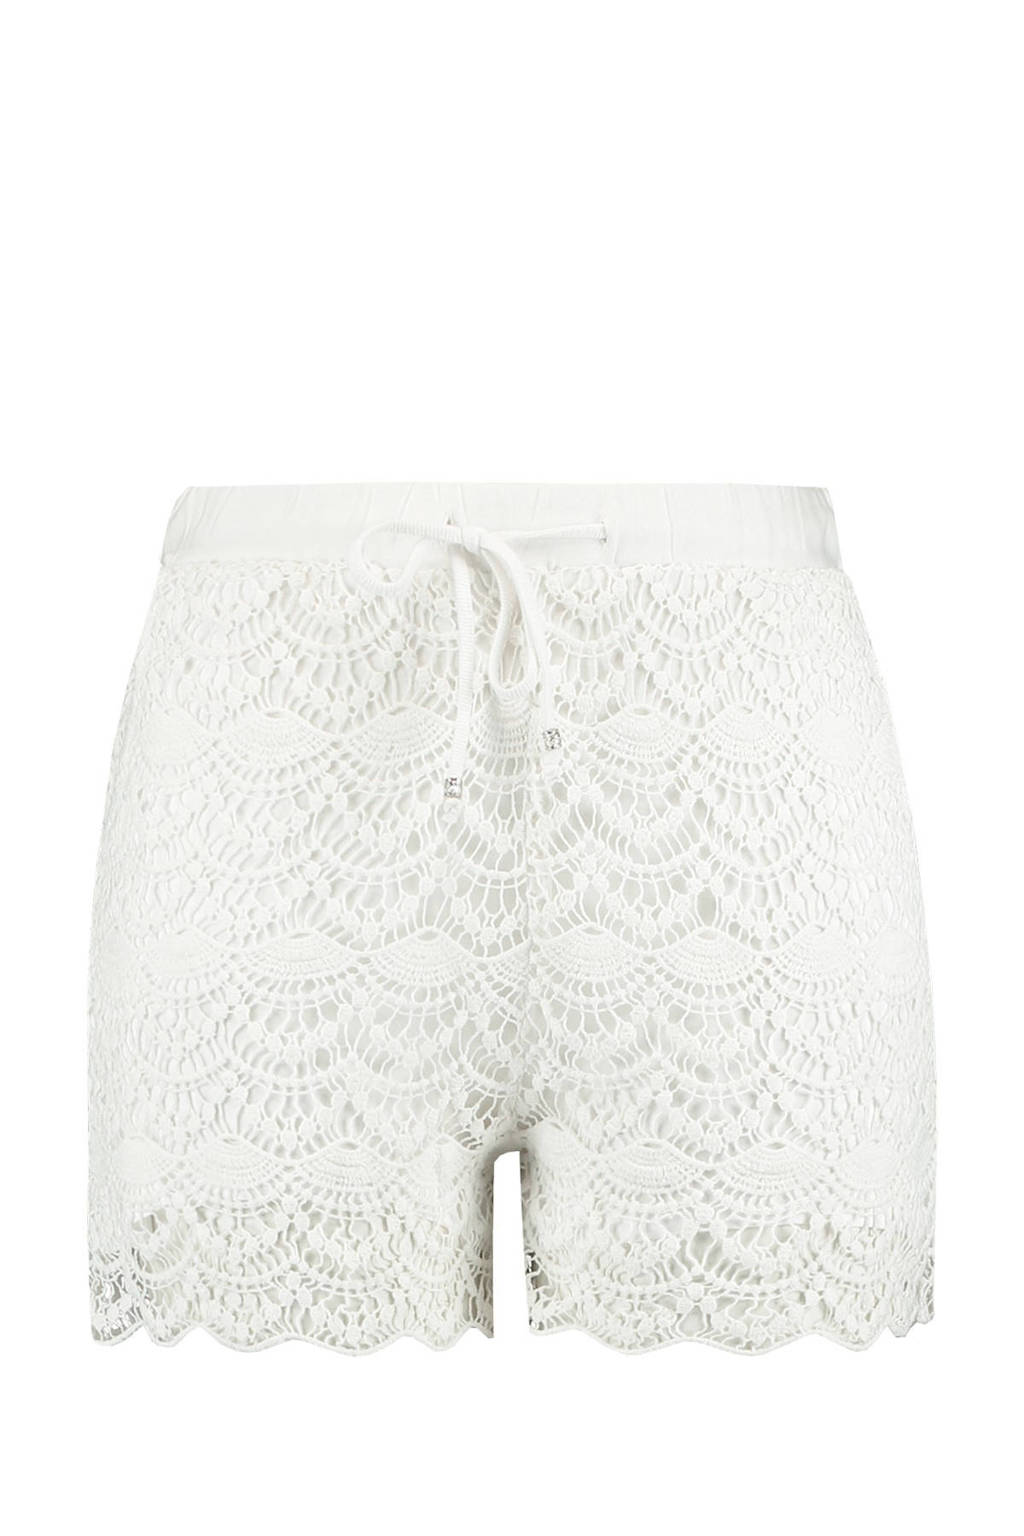 MS Mode kanten straight fit short wit, Wit